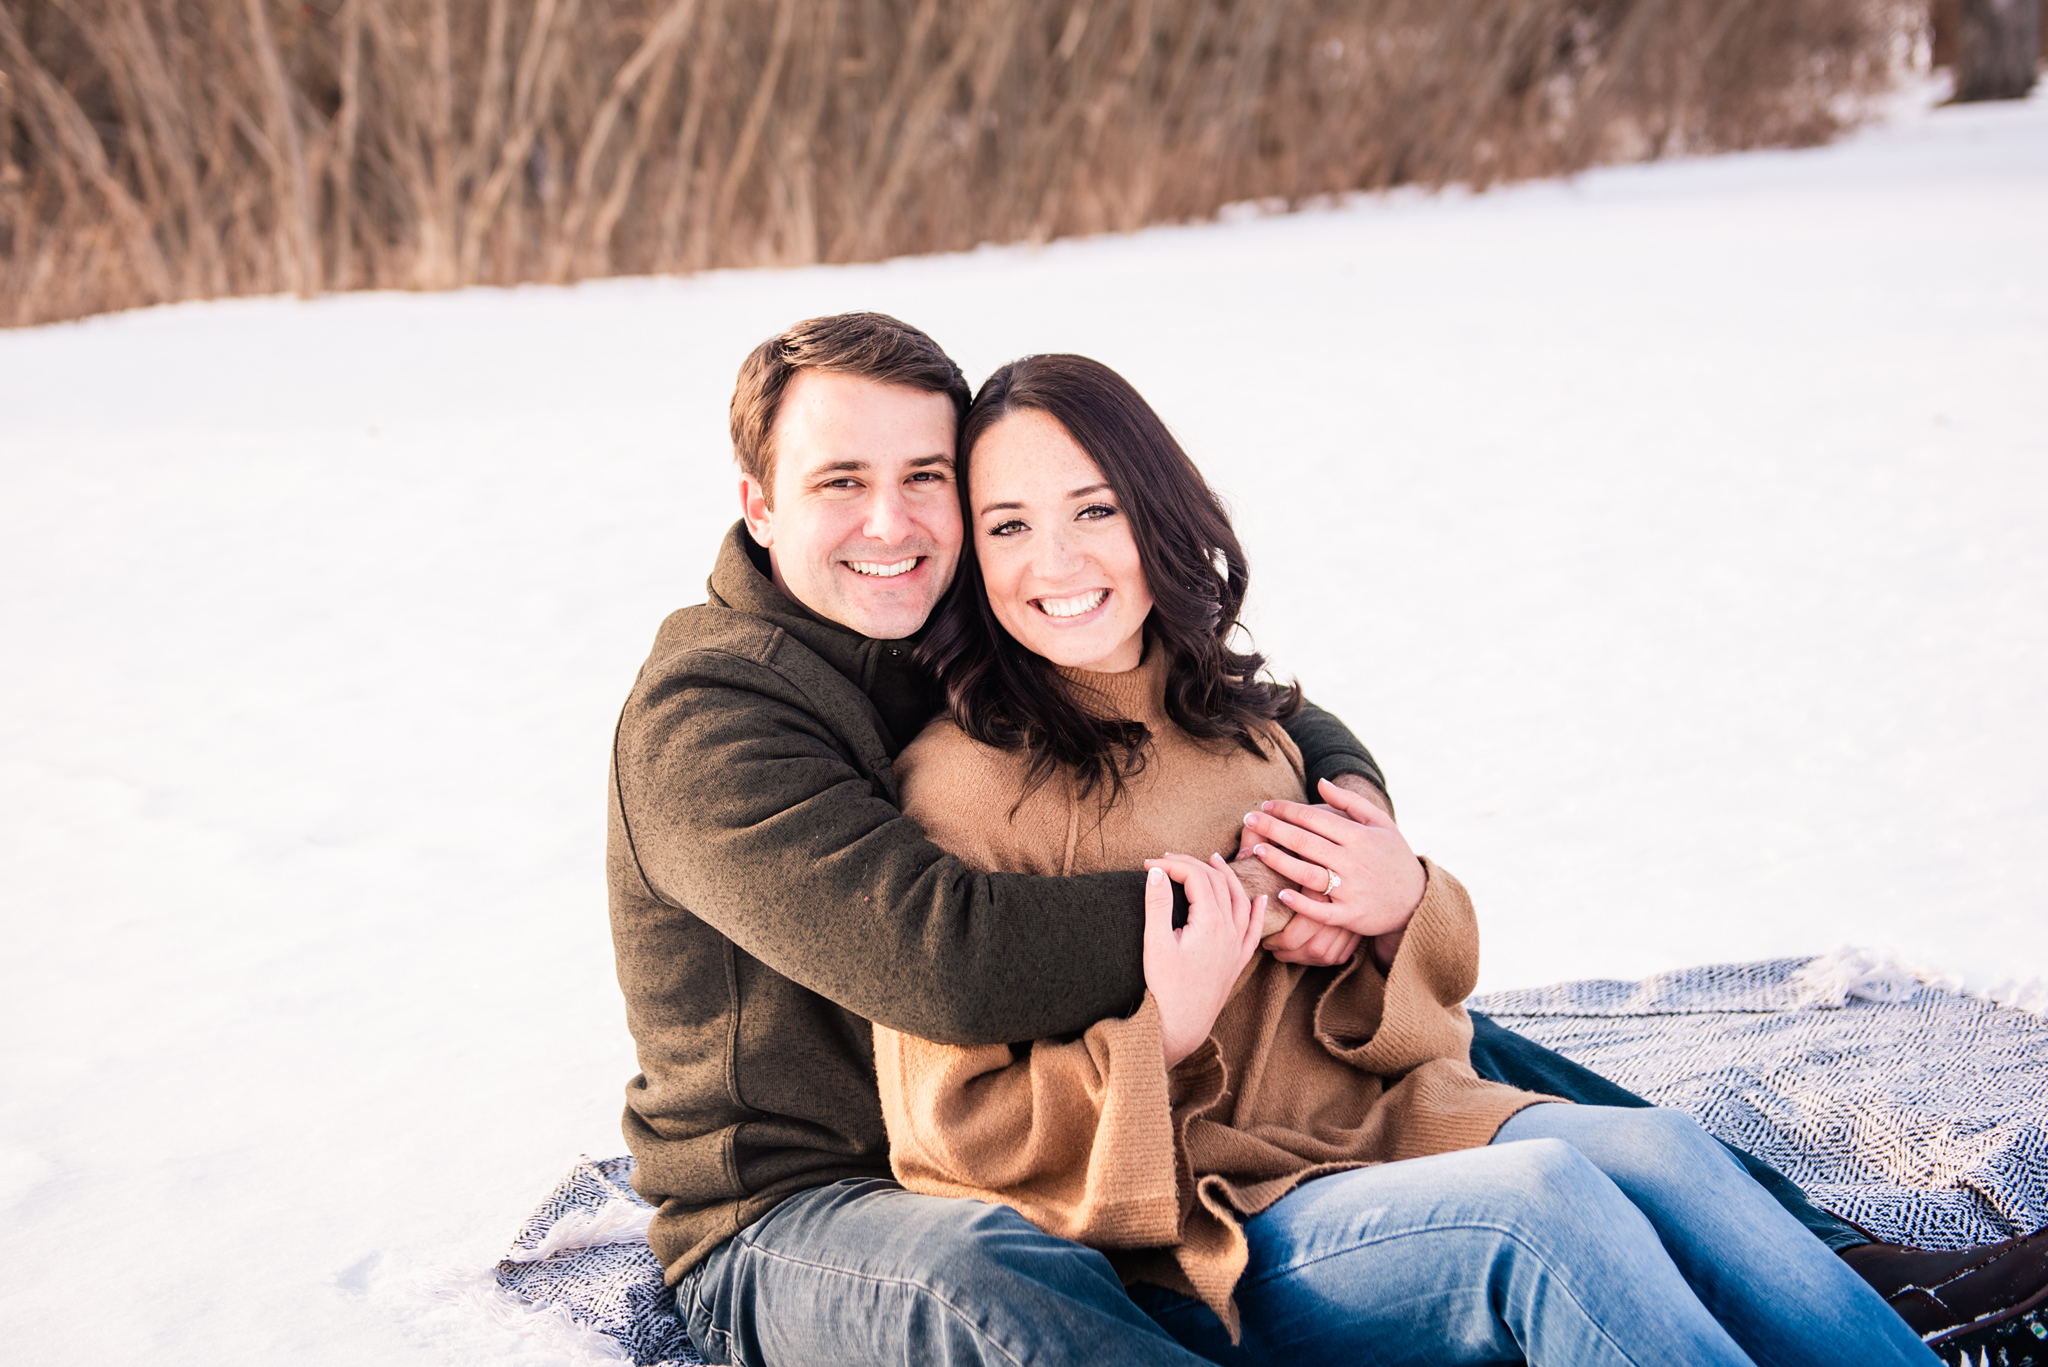 Fallbrook_Central_NY_Engagement_Session_JILL_STUDIO_Rochester_NY_Photographer_DSC_4840.jpg